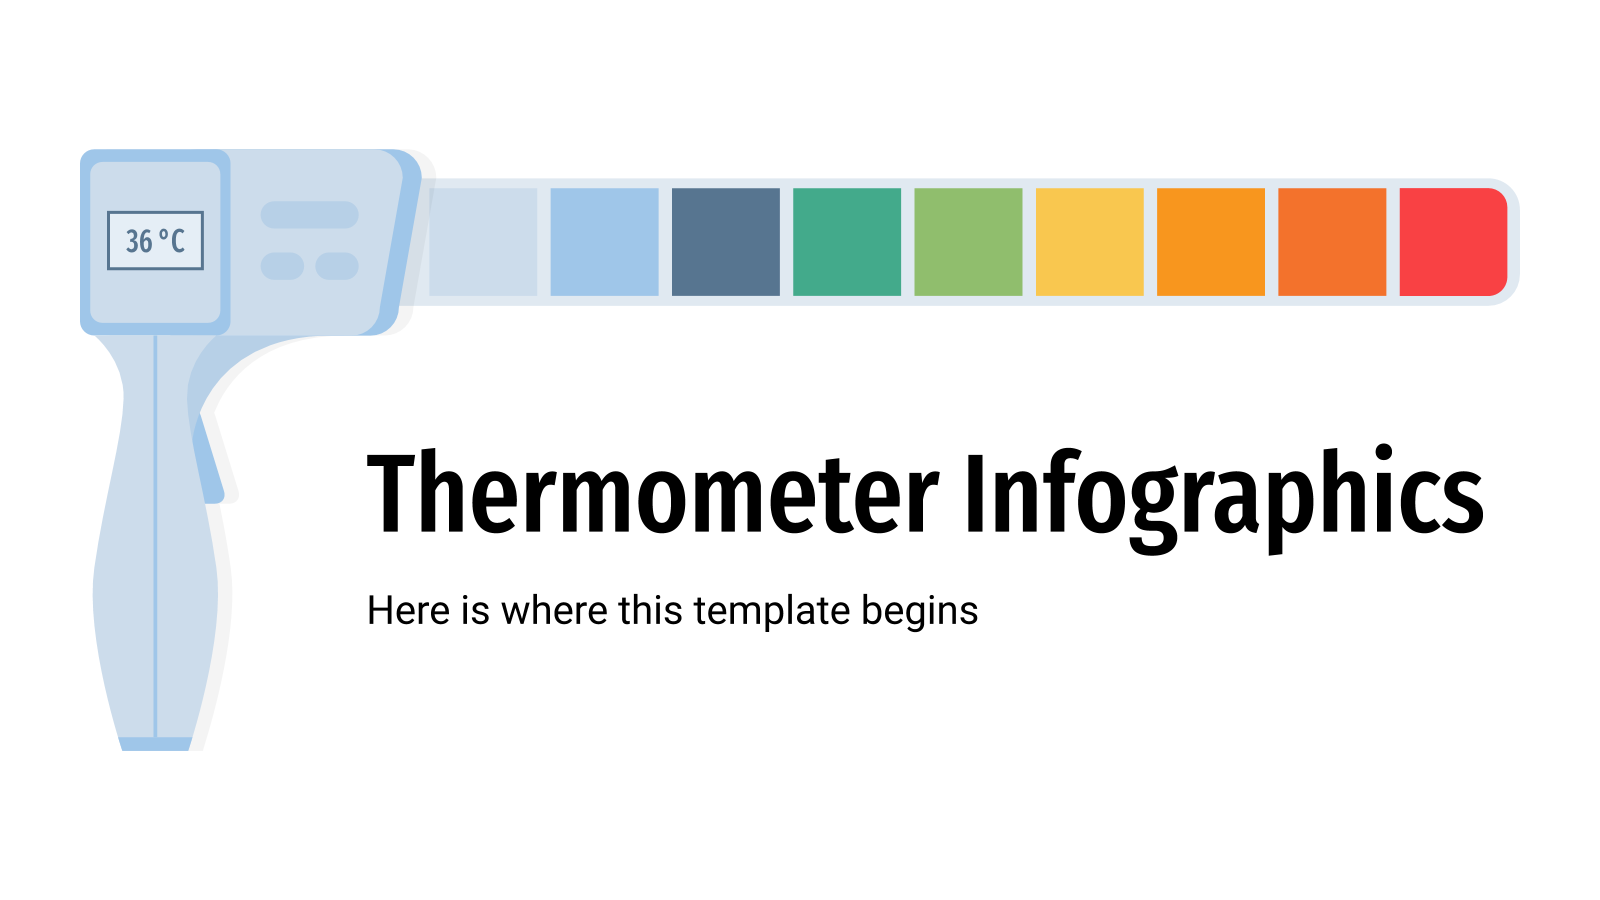 Thermometer Infographics presentation template